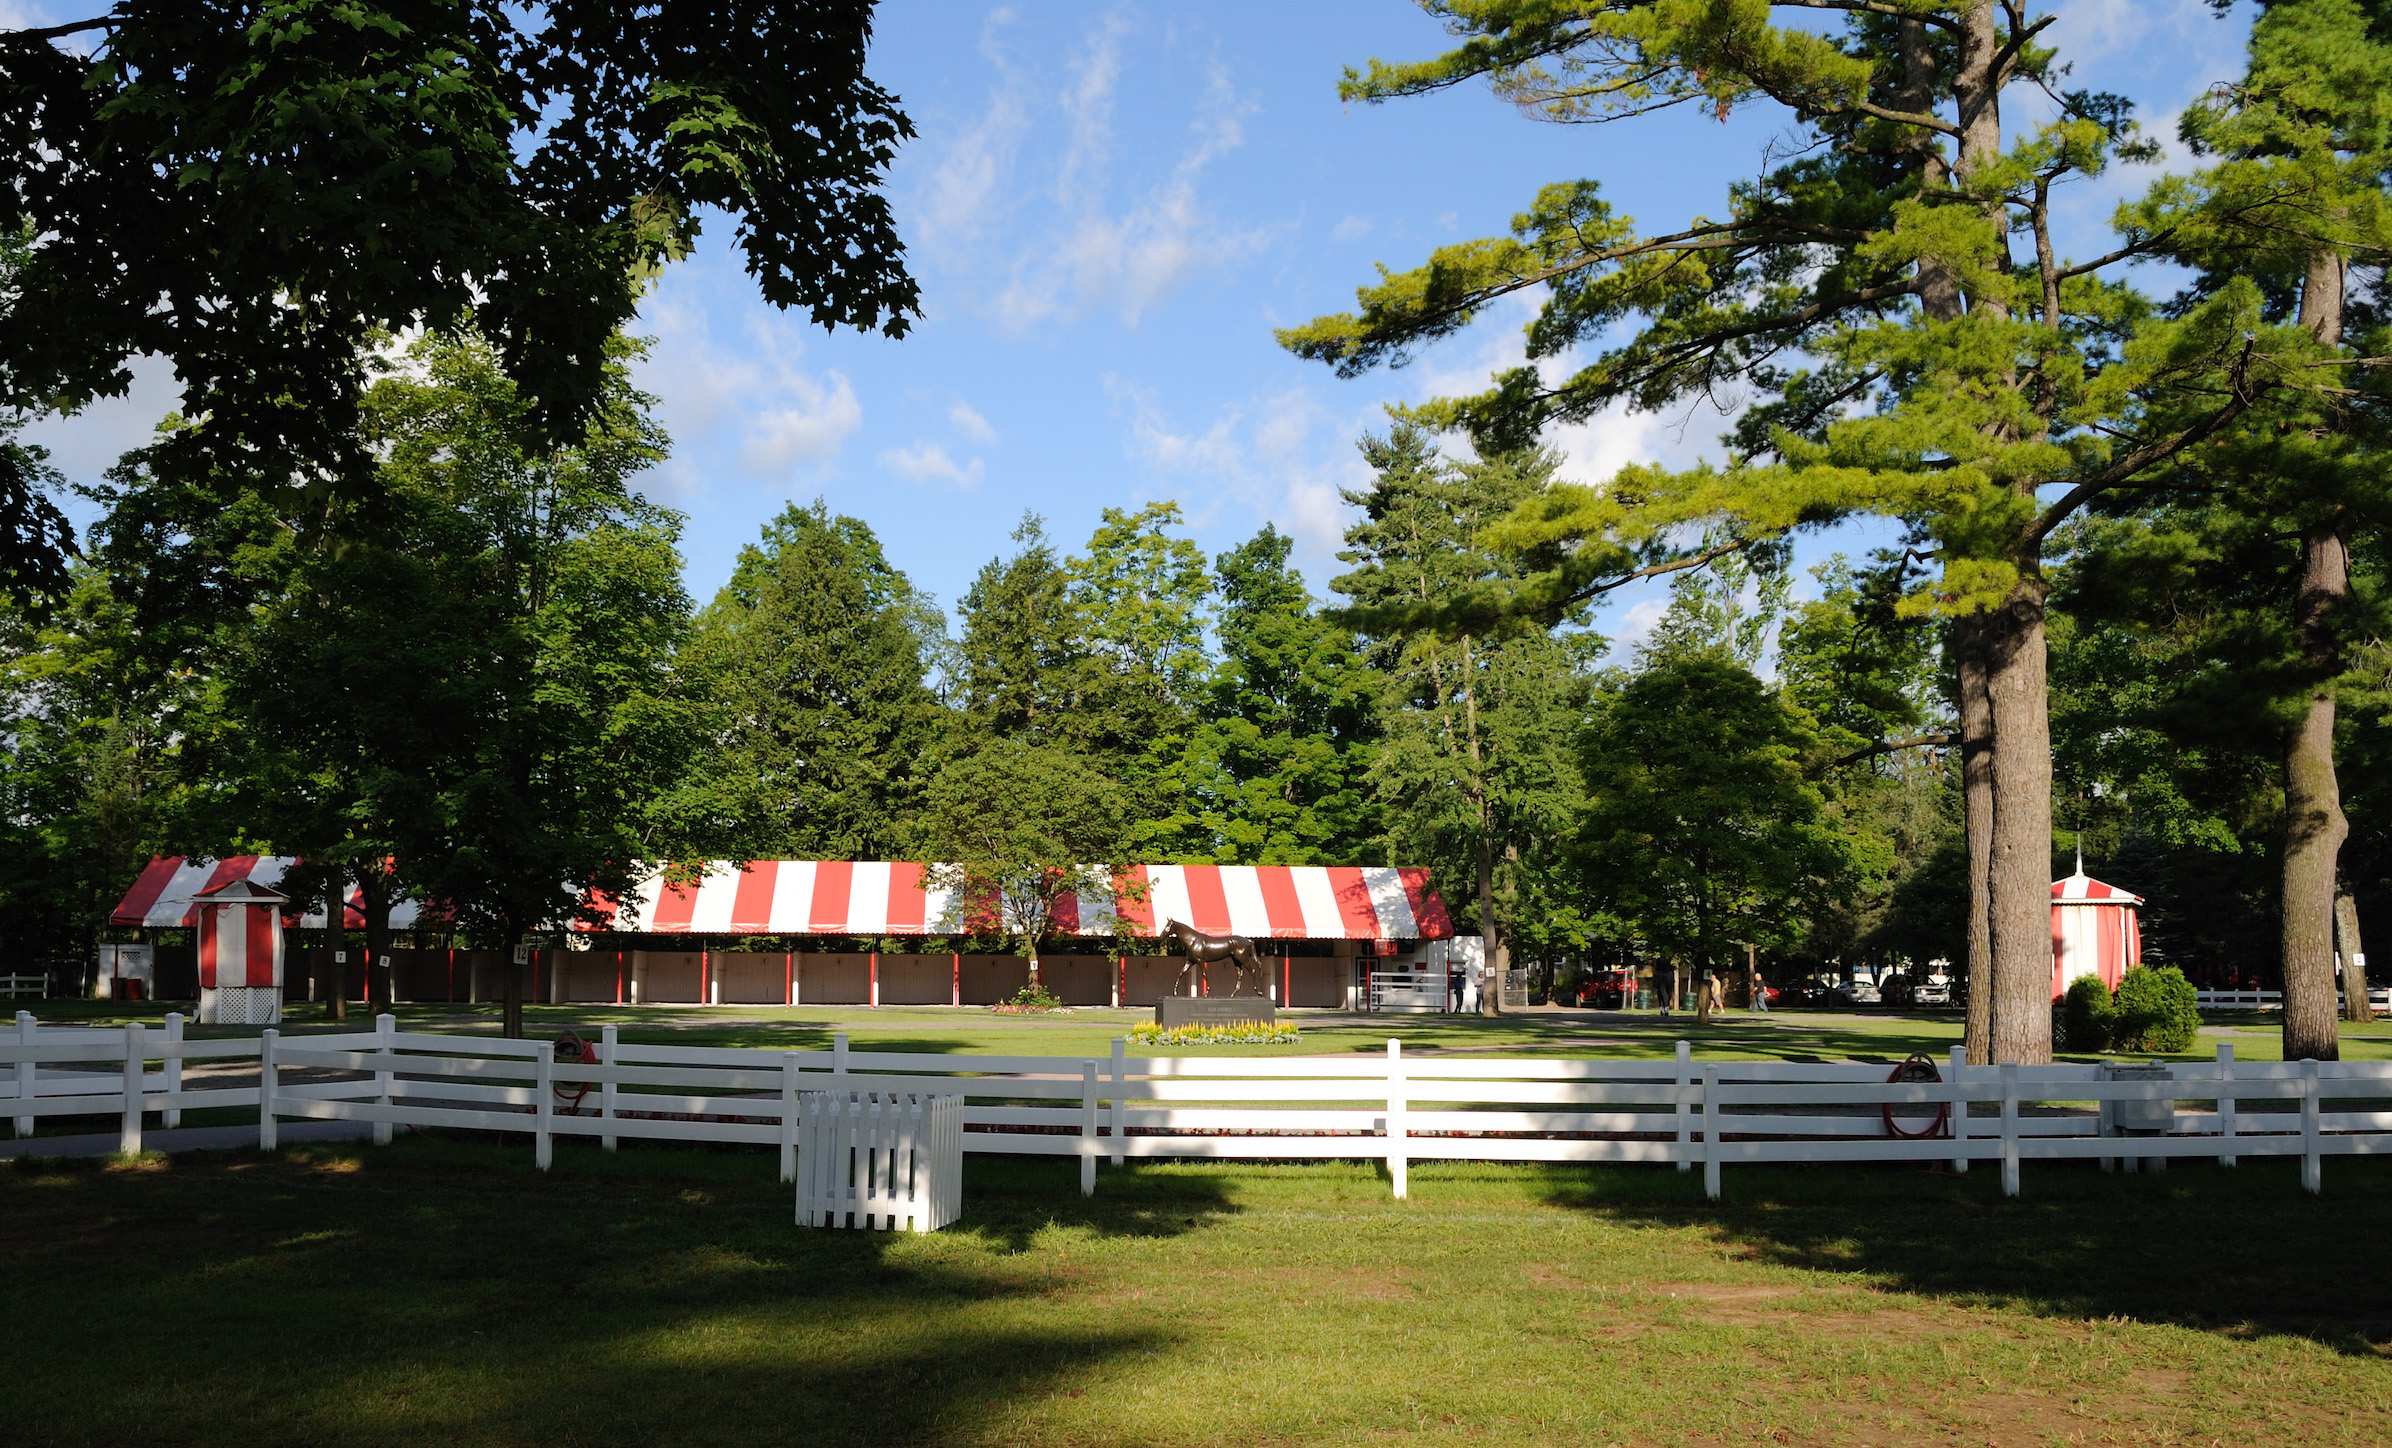 The red-and-white striped canopied saddling shed at Saratoga today. It was added in 1977. Image courtesy Turnberry Consulting